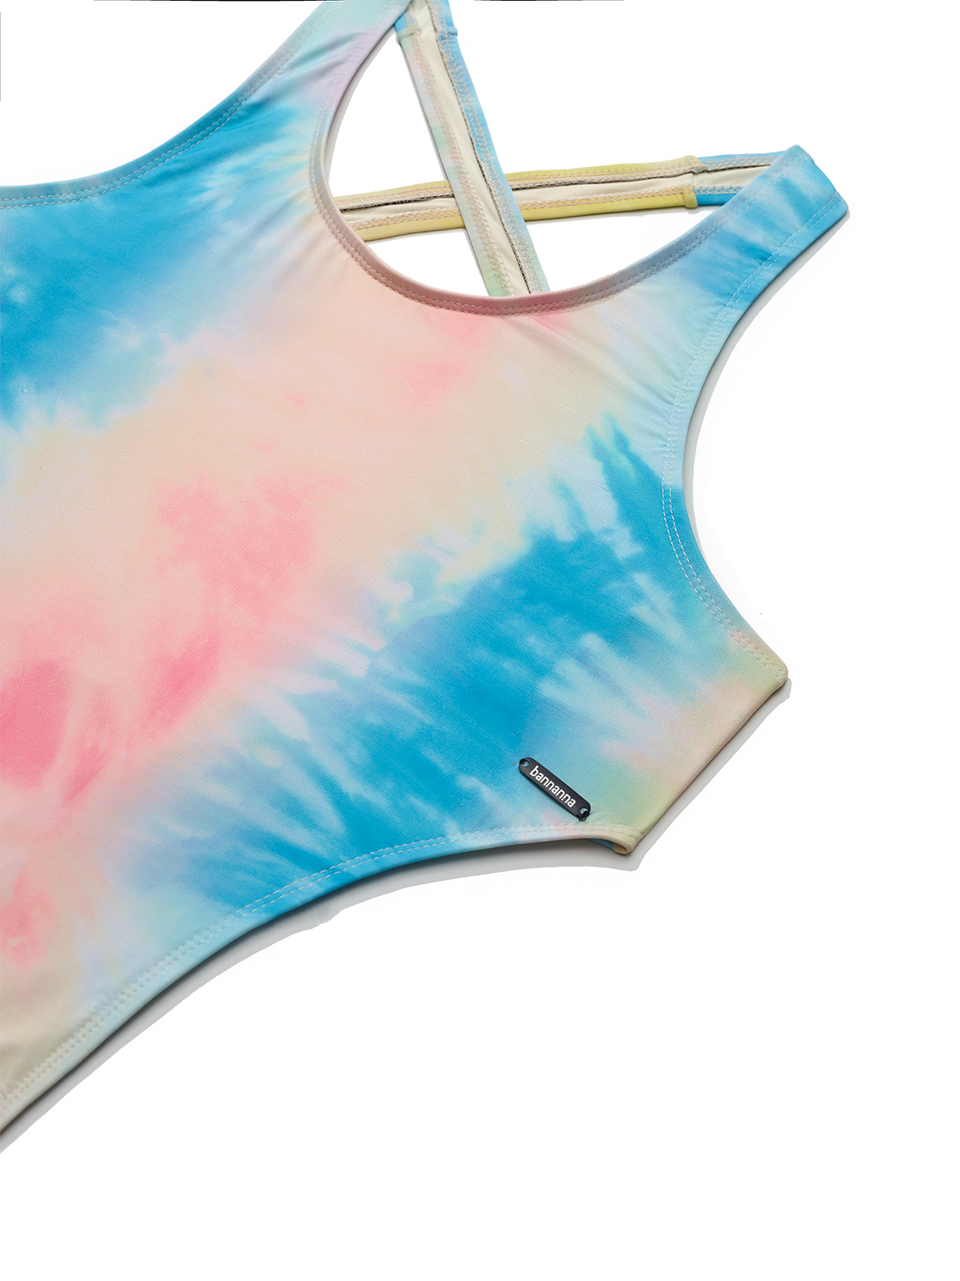 Maiô Estampa Exclusiva Tie Dye